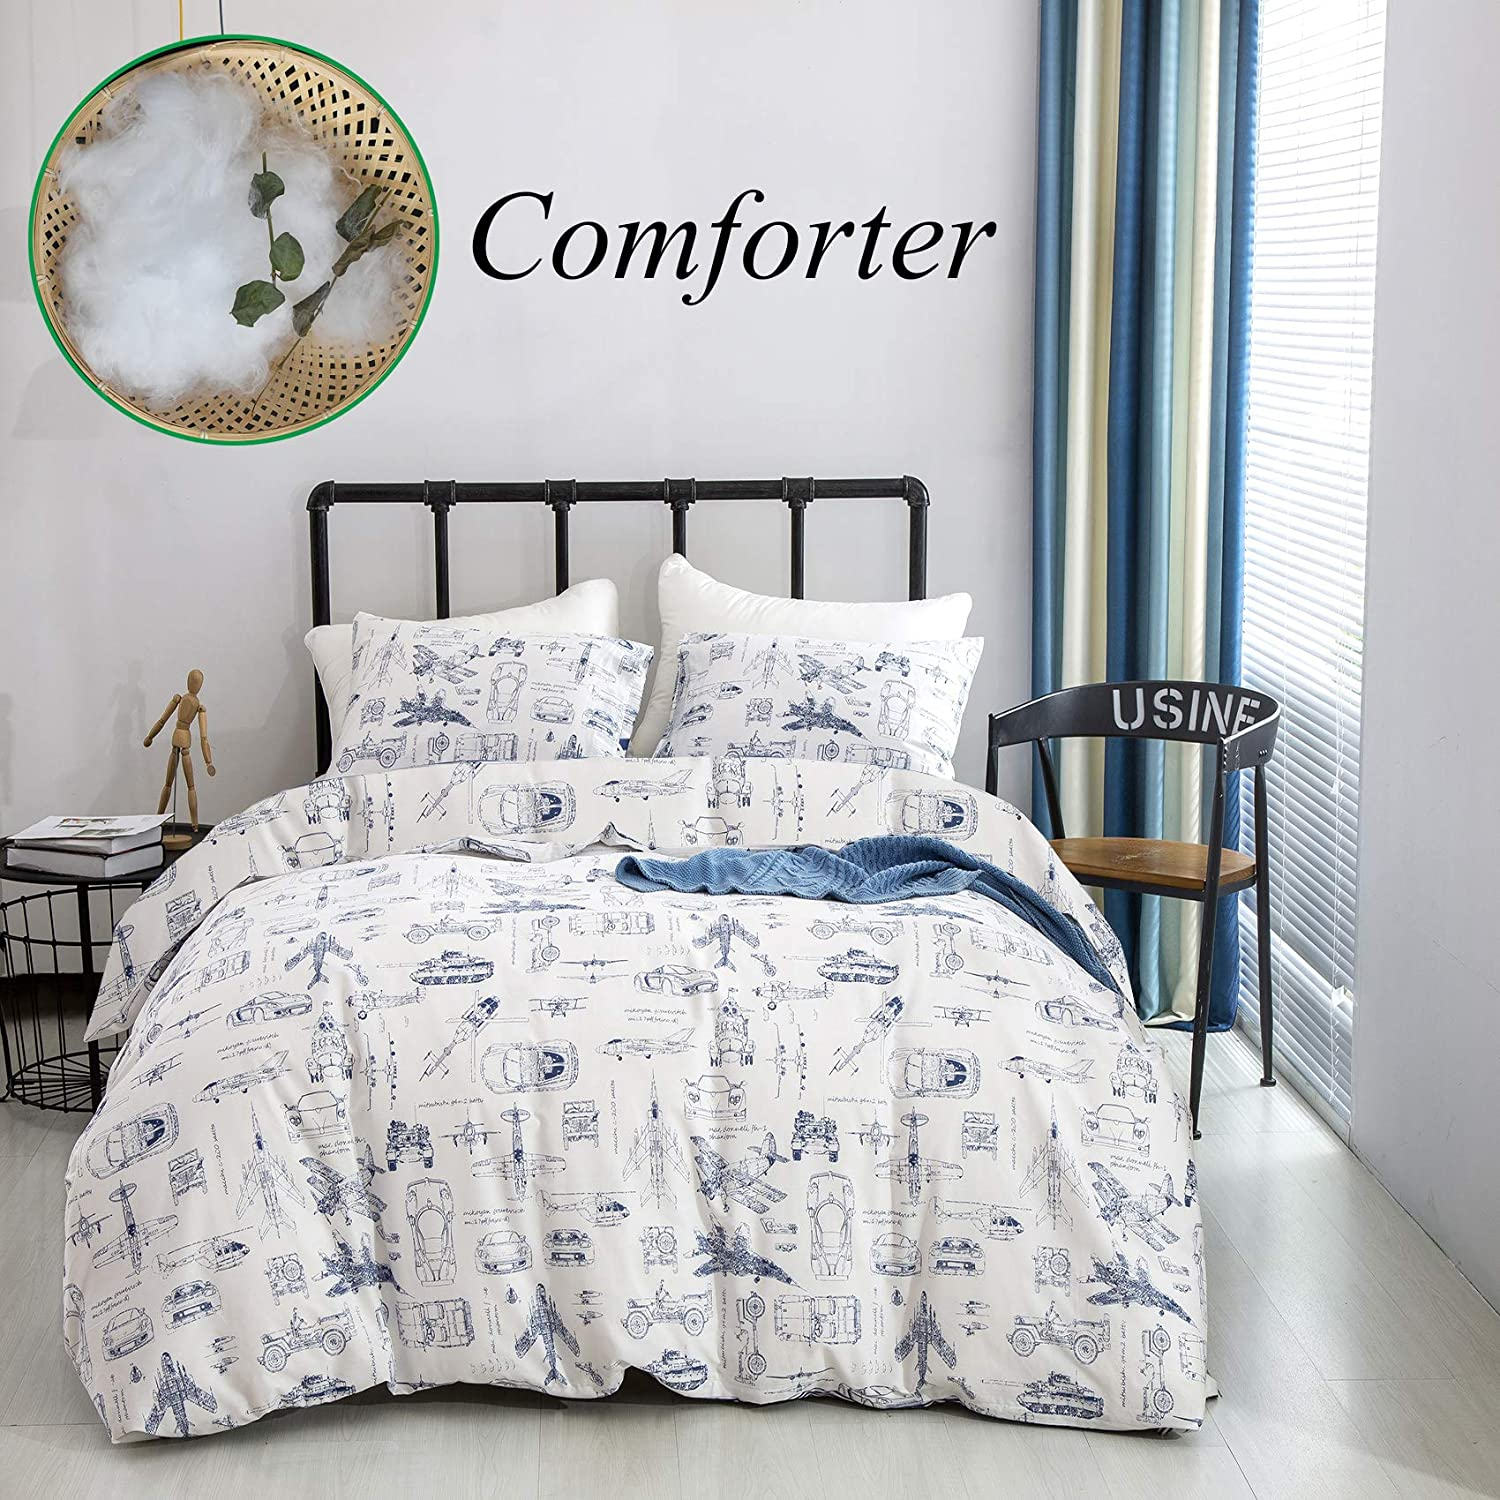 Wellboo Aircraft Comforter Boys Kids Plane Bedding Sets Military Cars White Comforter Sets Cotton Children Cartoon Twin Transport Comforter Reversible White and Blue Bedding Breathable Durable Healthy